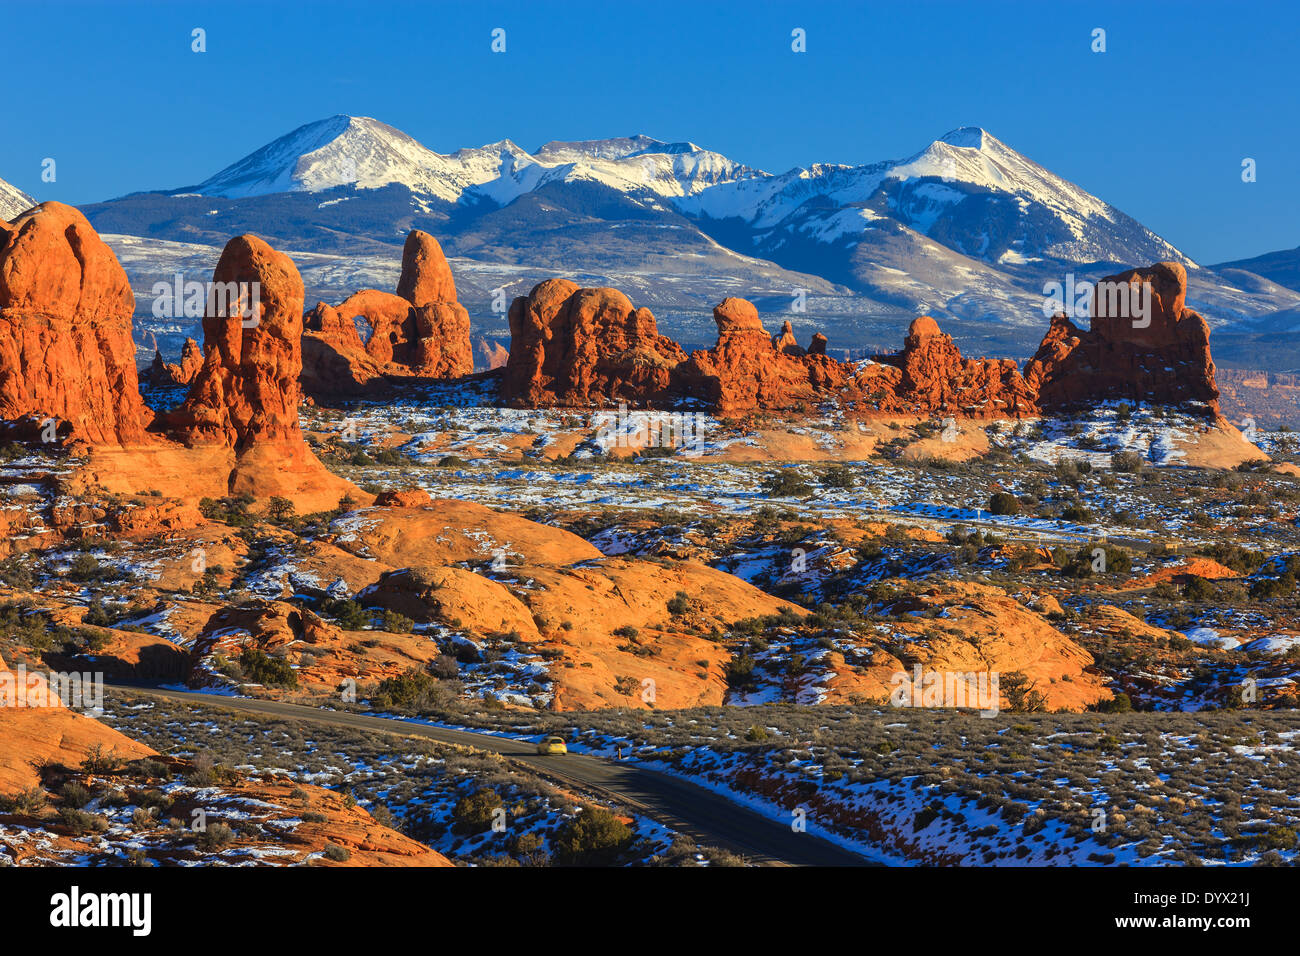 Winter scenery in Arches National Park, near Moab, Utah - USA - Stock Image